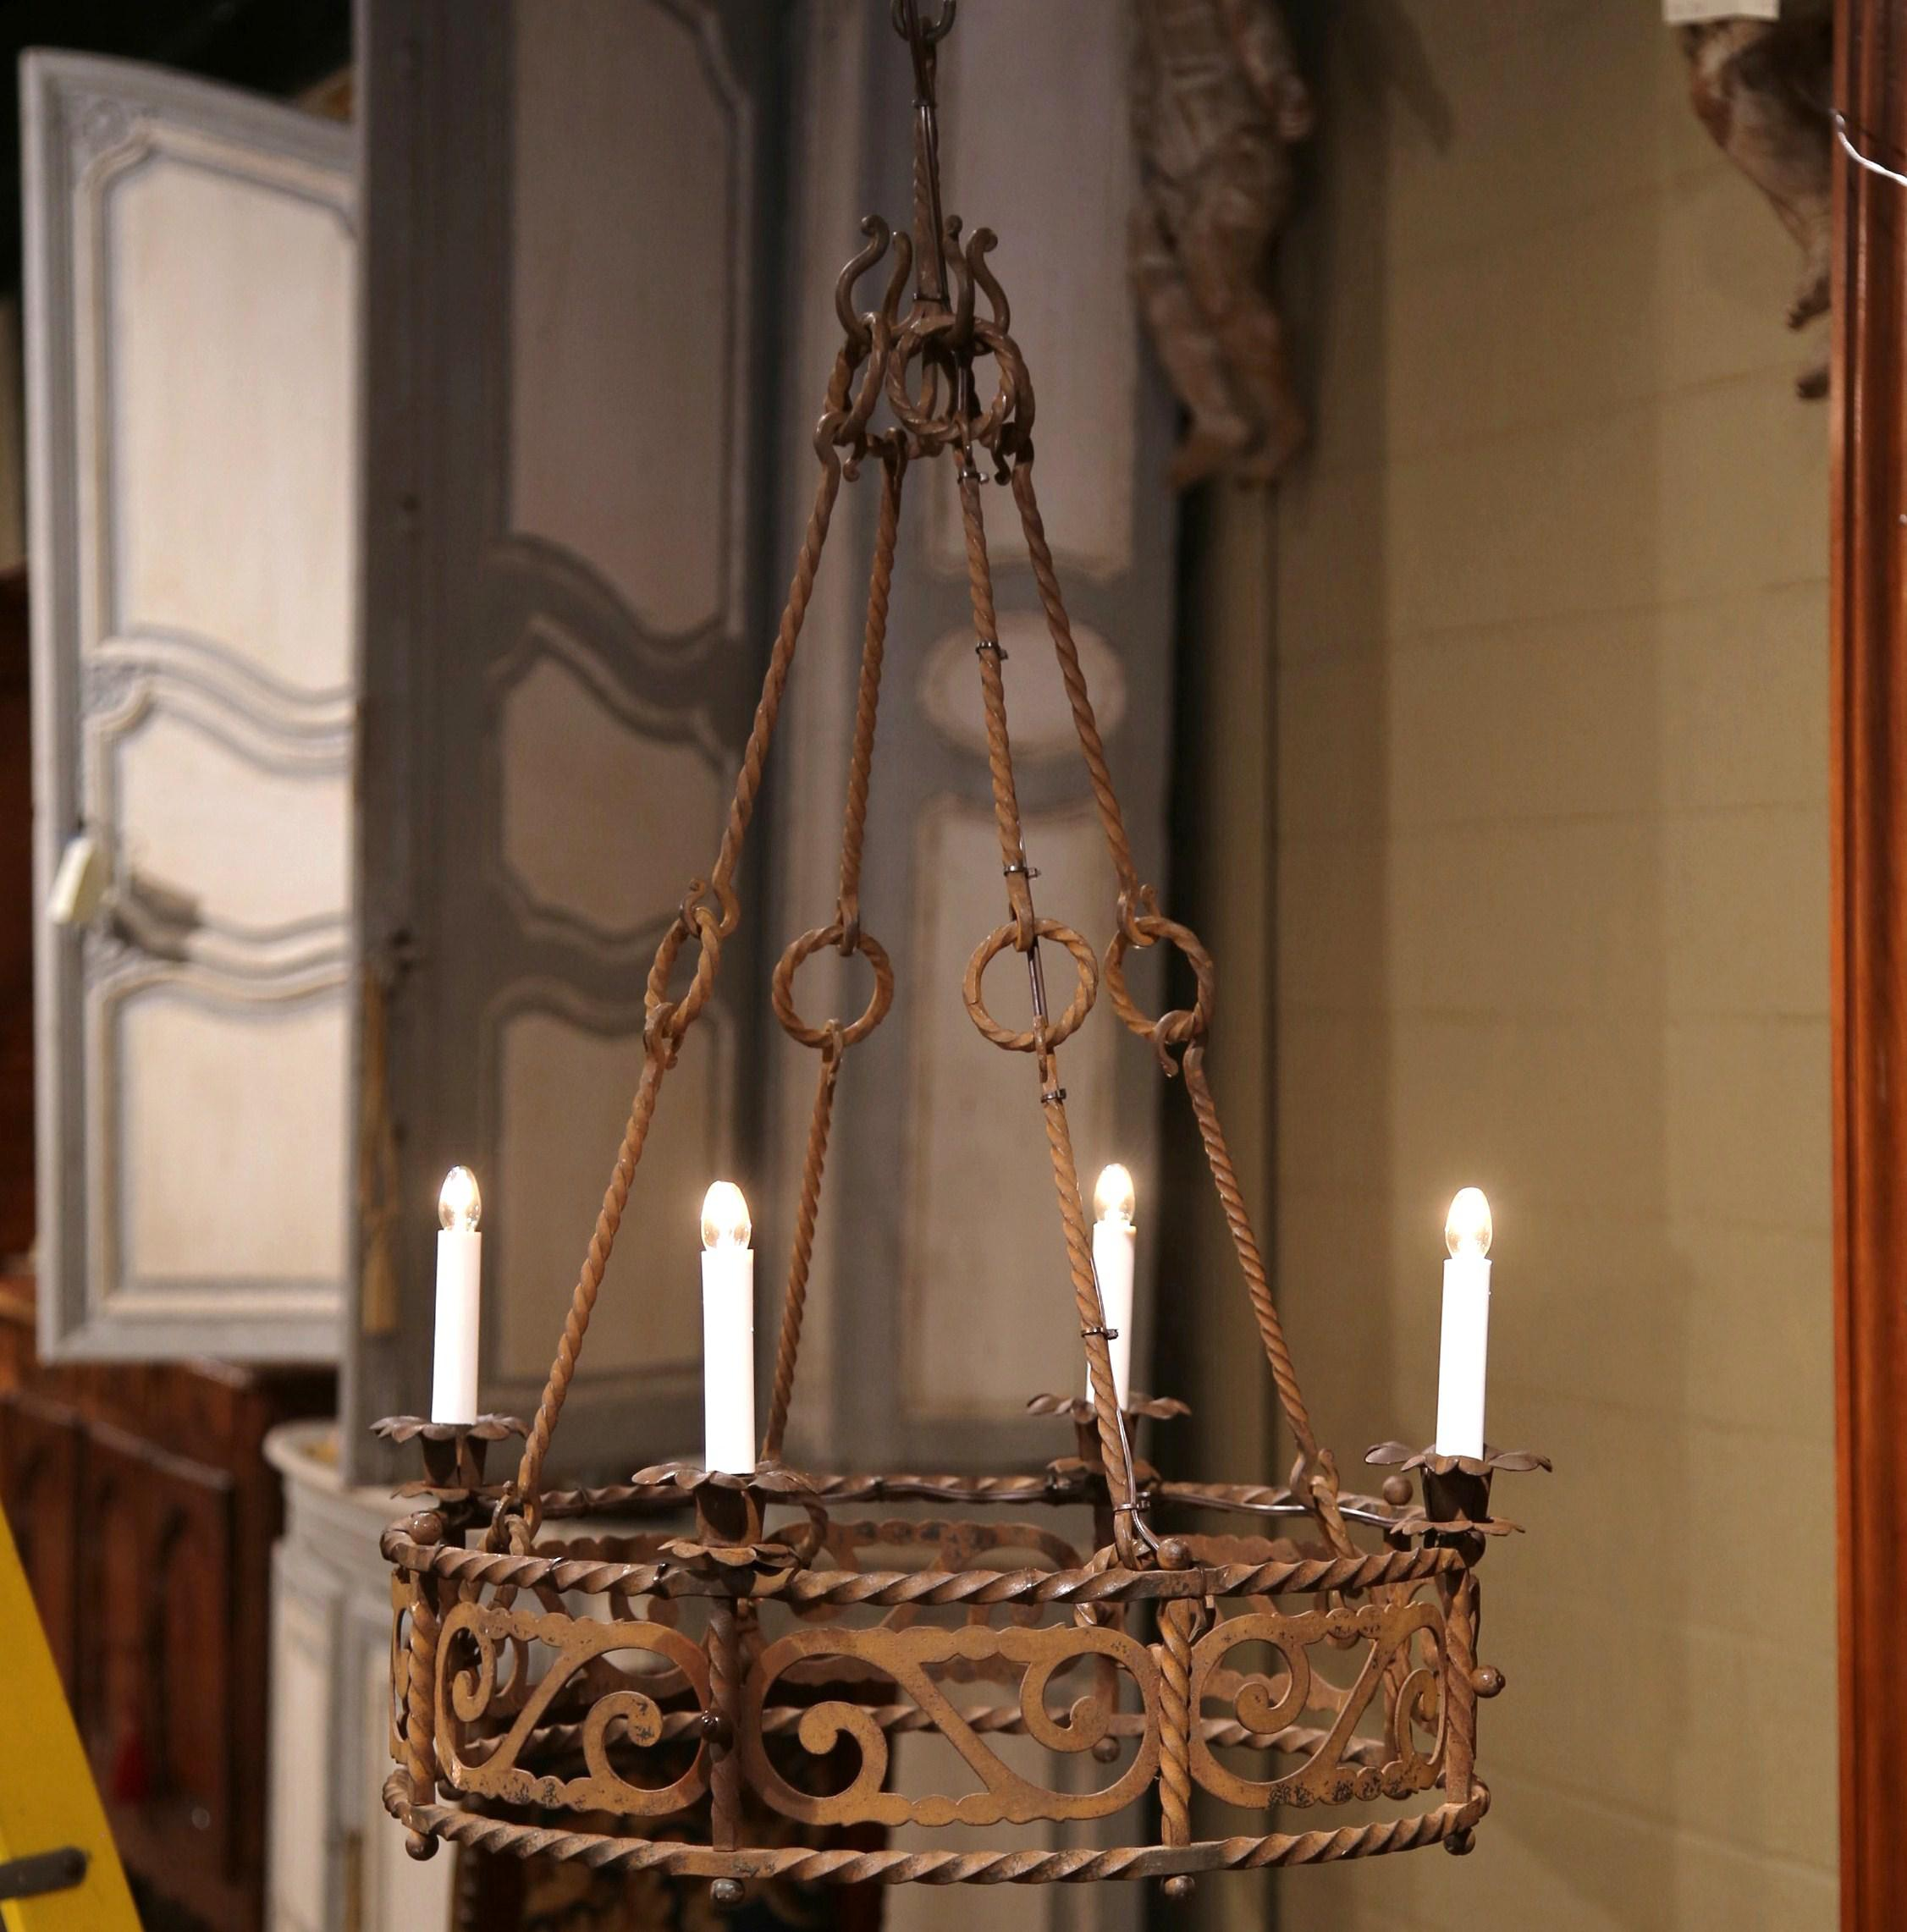 19th Century French Four-Light Gothic Rusty Wrought Iron Round Chandelier - Image 9 of & 19th Century French Four-Light Gothic Rusty Wrought Iron Round ...